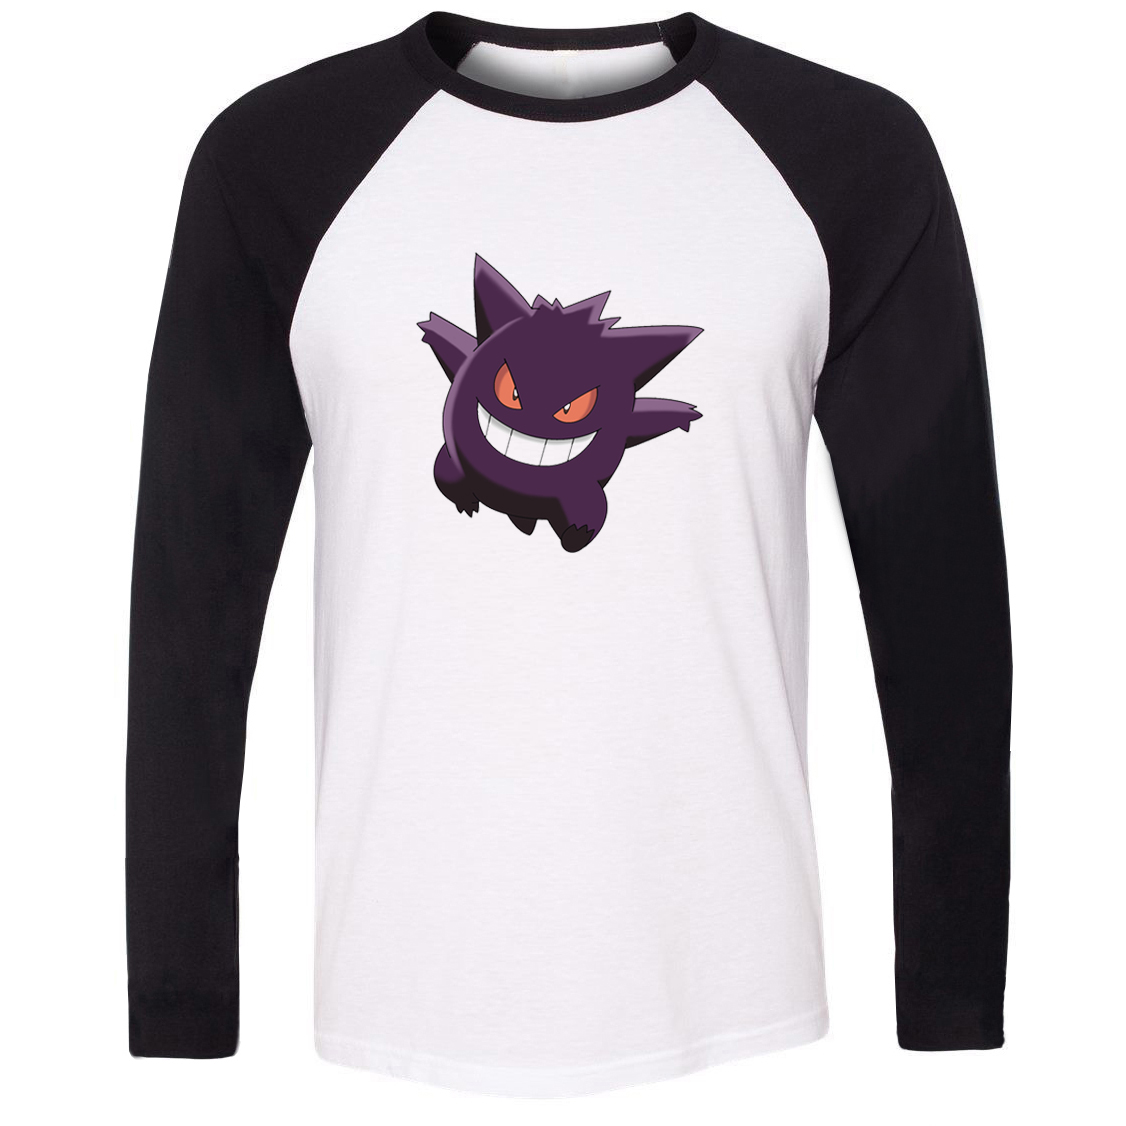 Unisex T-shirt Pokemon National Pokedex 094 Ghost Poison Type Gengar Pattern Raglan Long Sleeve Men T shirt Boy Casual Tee Tops image